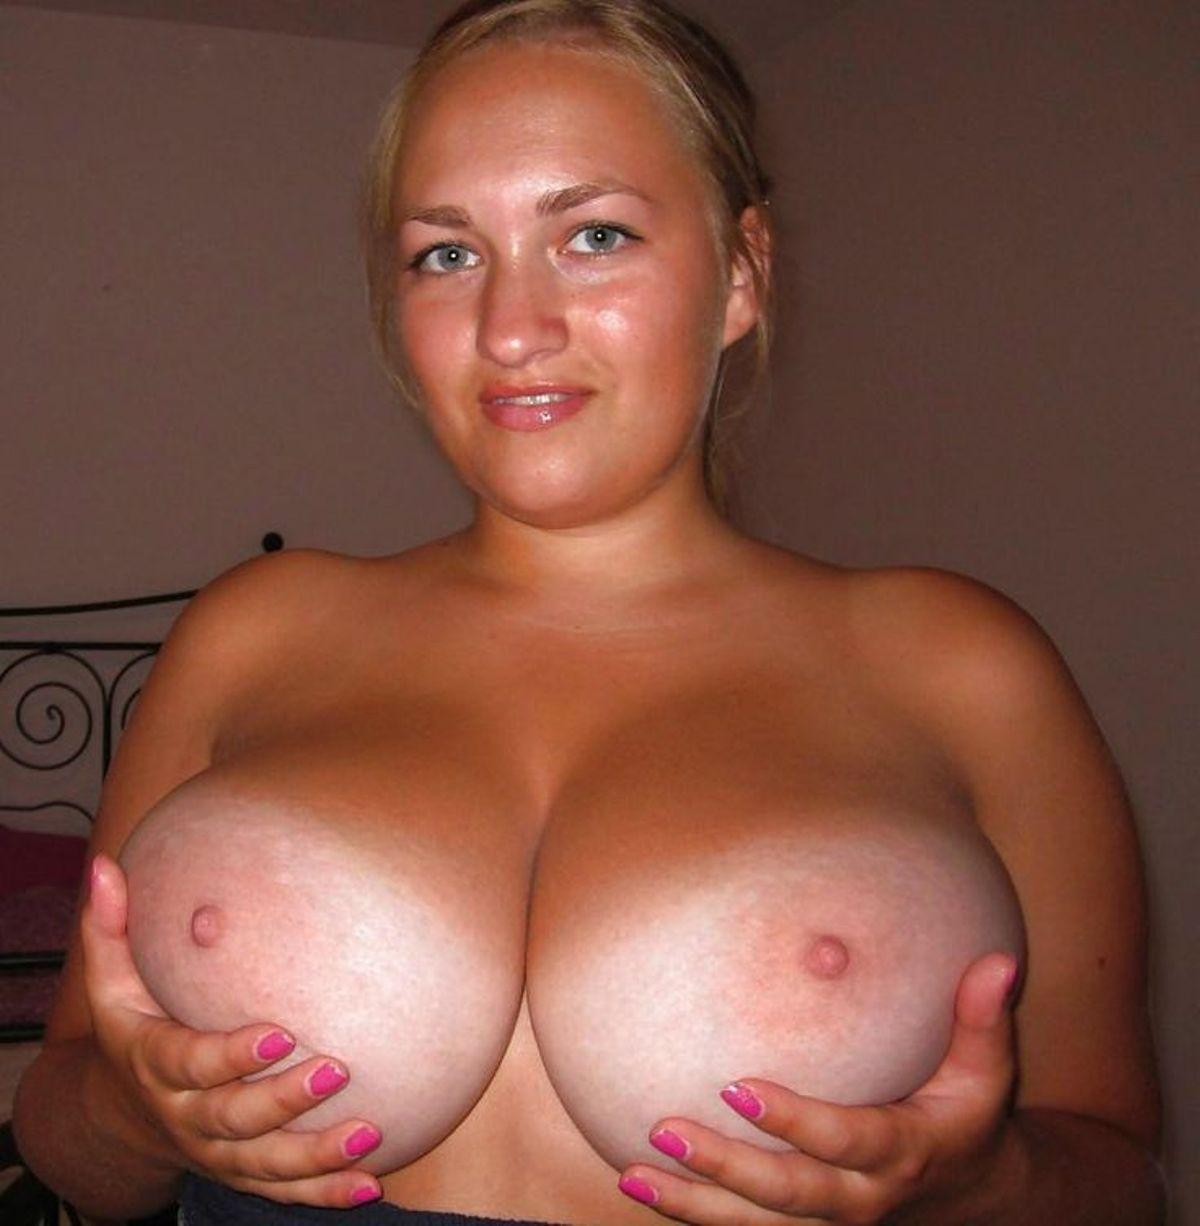 Busty female releases her big natural boobs from see thru dress. Hot MILF blonde shows naked big tits swing free